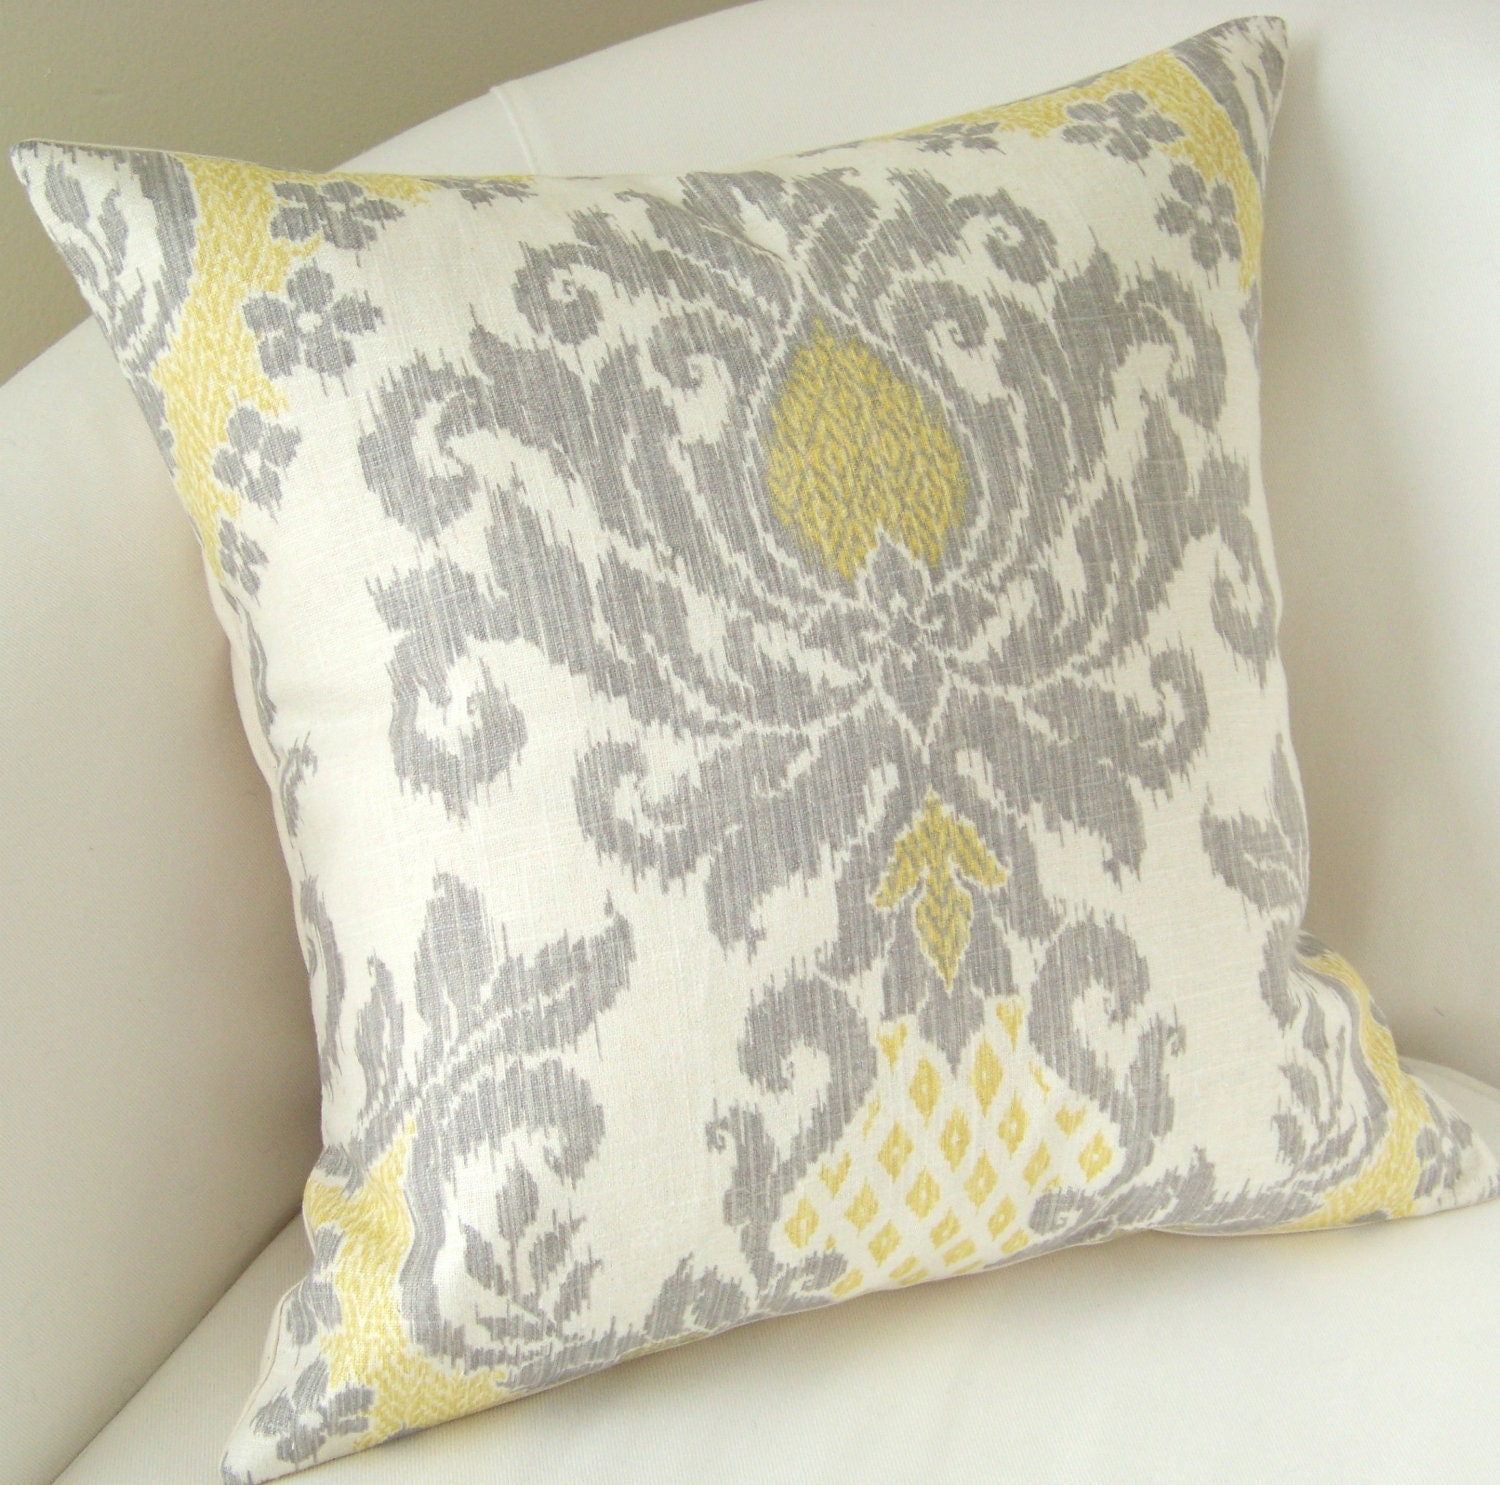 Images For Decorative Pillows : Gray Yellow Pillow Cover Ikat Pillow Decorative Throw Pillows